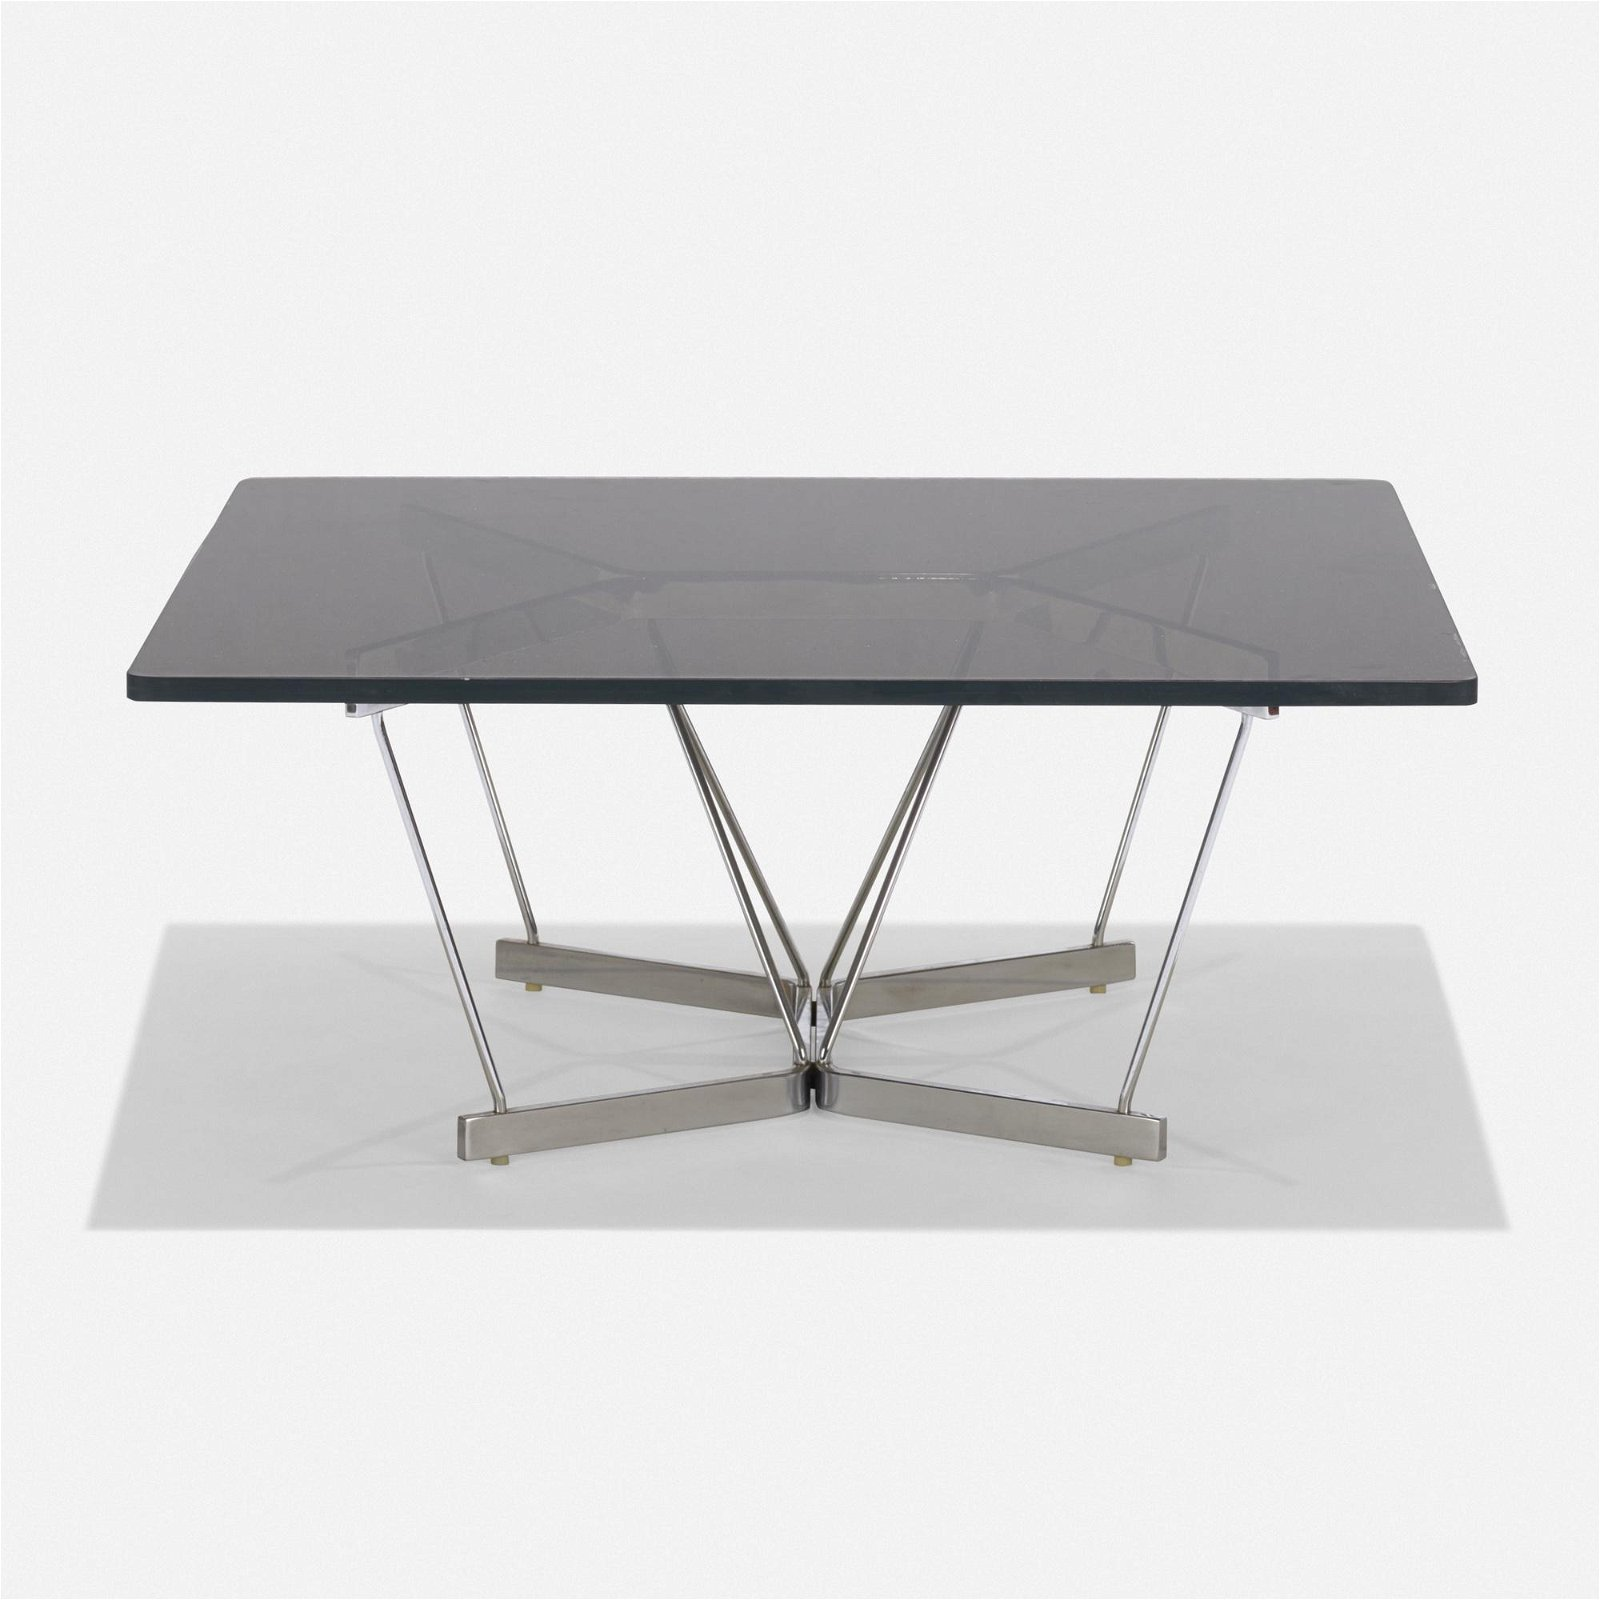 George Nelson & Associates, Catenary coffee table